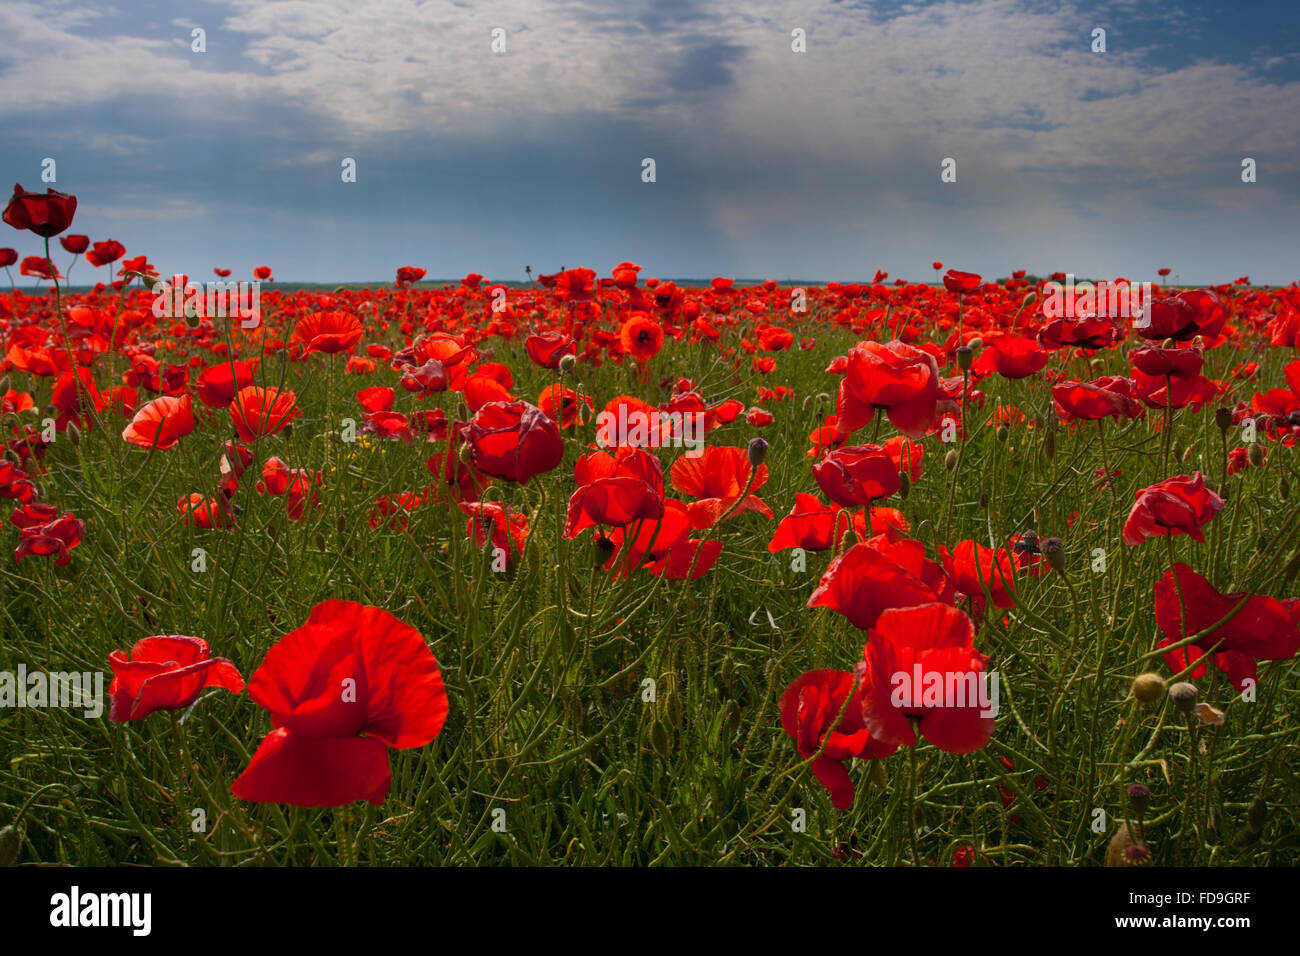 The huge field of red poppies flowers. Sun and clouds. View of a lot of poppies - Stock Image